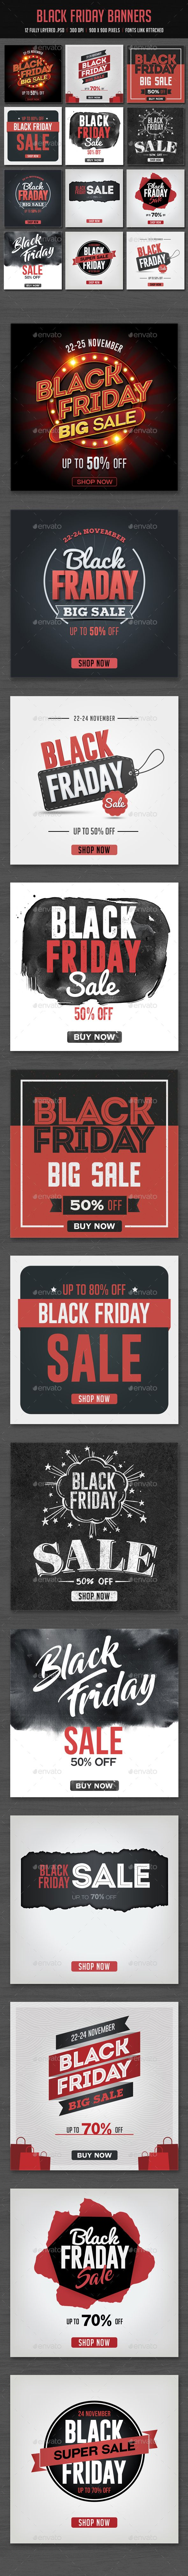 Black Friday Banners  — PSD Template #900x900 #black friday • Download ➝ https://graphicriver.net/item/black-friday-banners/18477377?ref=pxcr